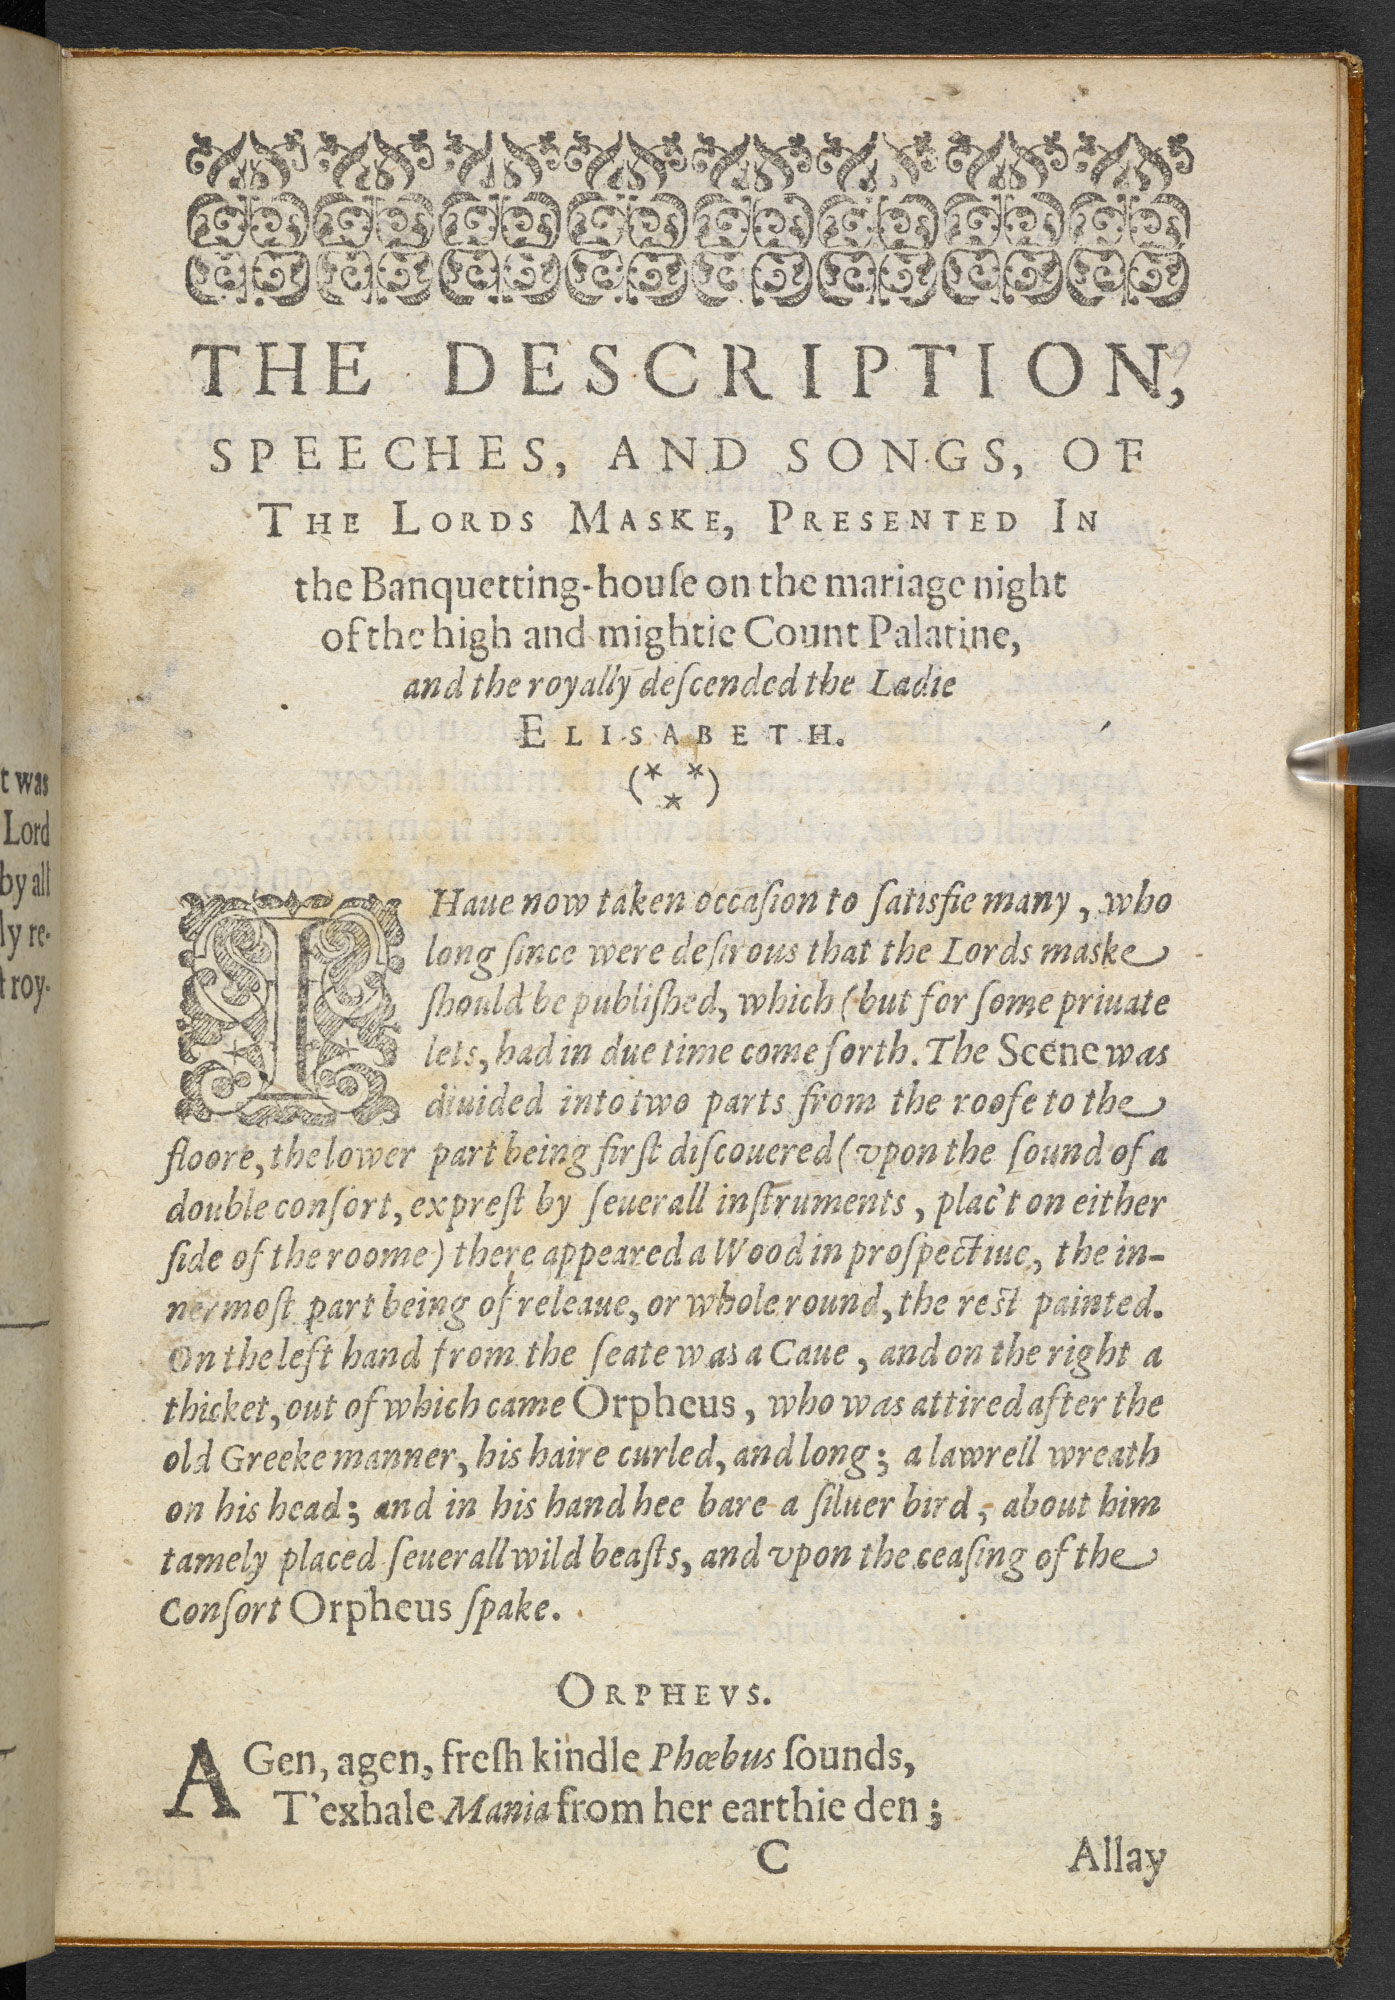 Campion's The Lord's Masque, 1613